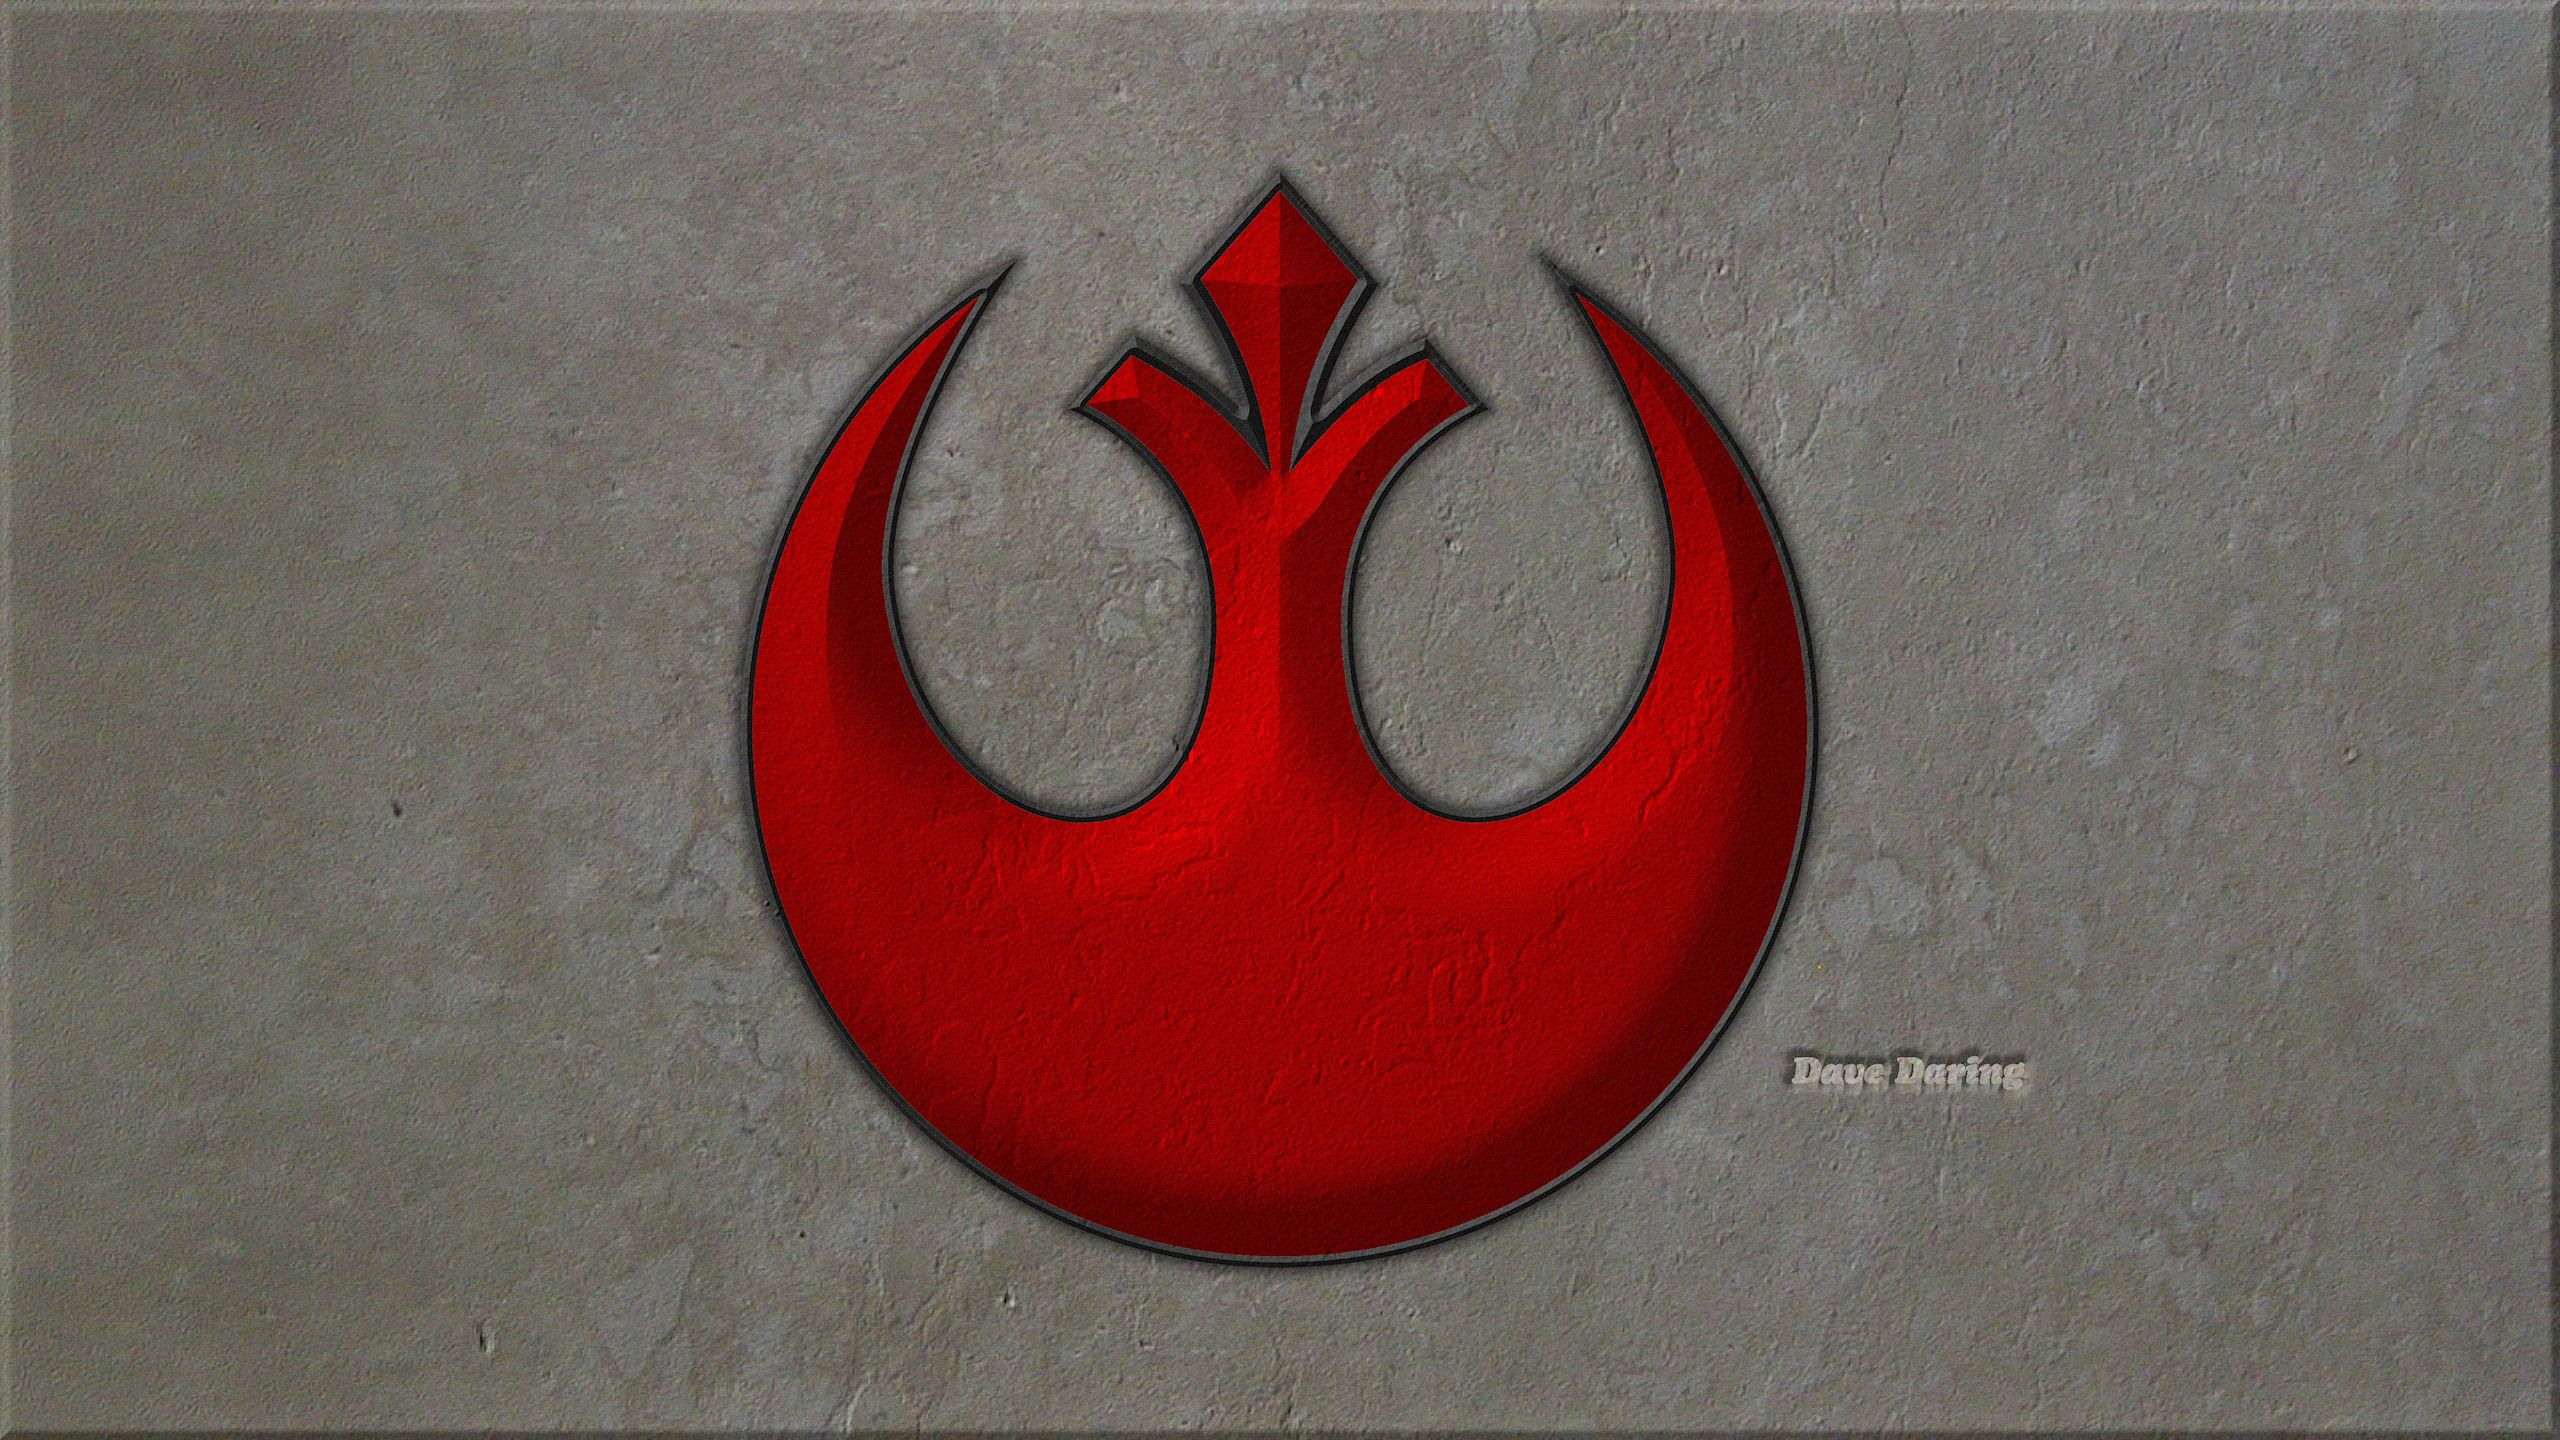 Rebel Alliance Starbird Symbol By Dave Daring